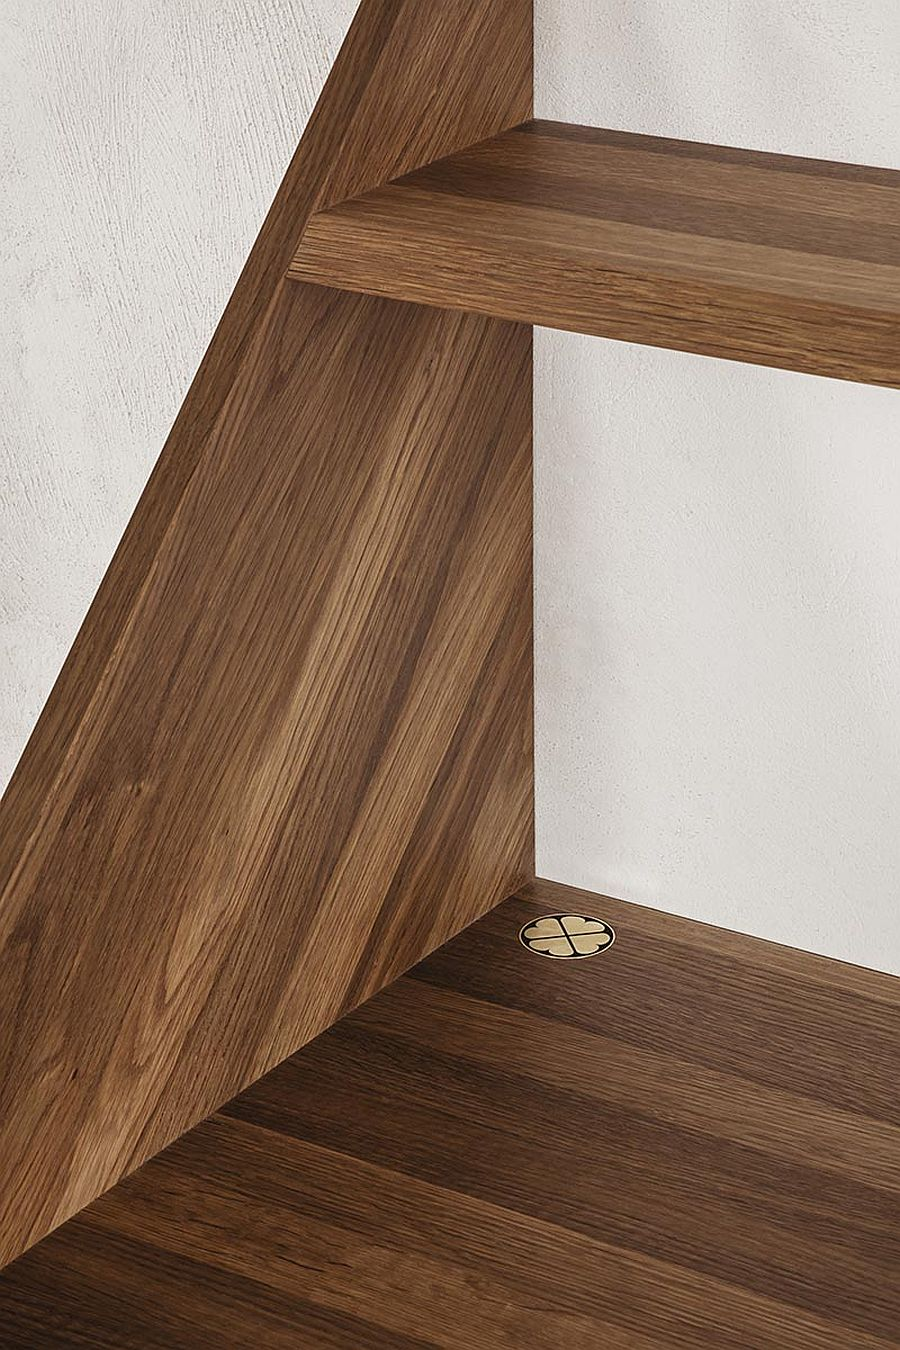 Closer look at the oak finish of the wall-mounted XLIBRIS desk